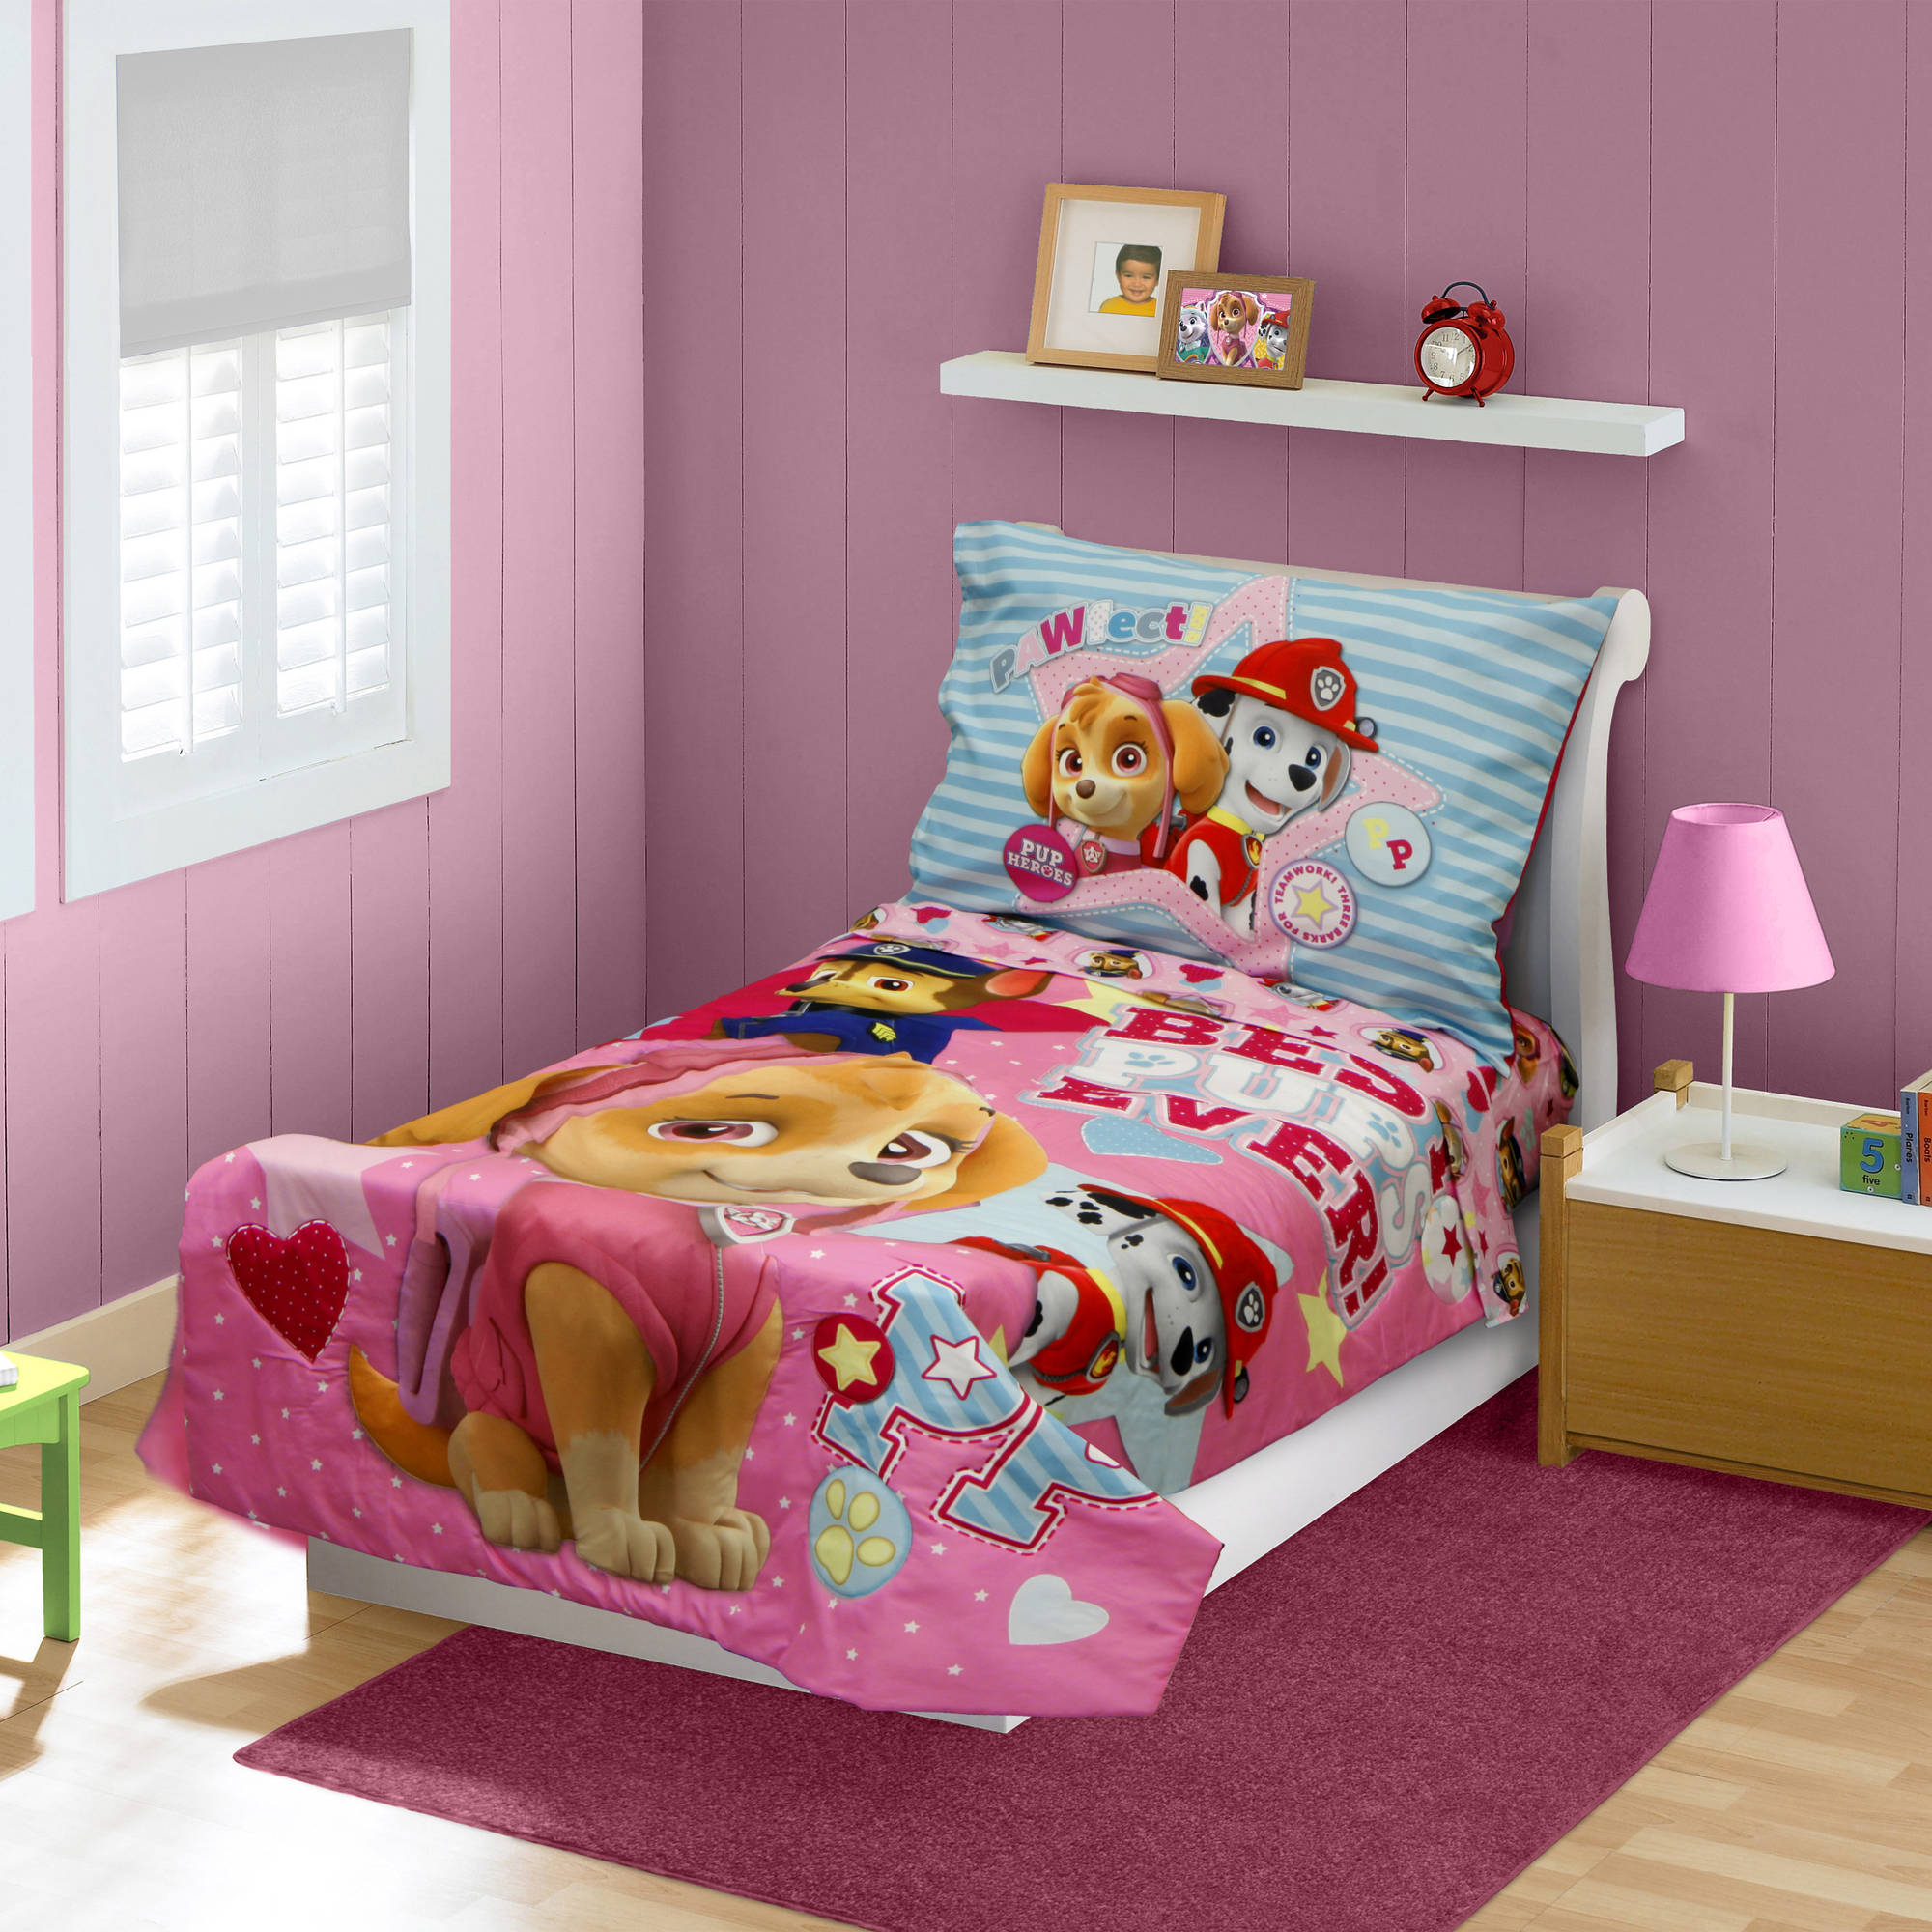 Paw Patrol Skye Best Pups Ever 3-Piece Toddler Bedding Set with BONUS Matching Pillow Case